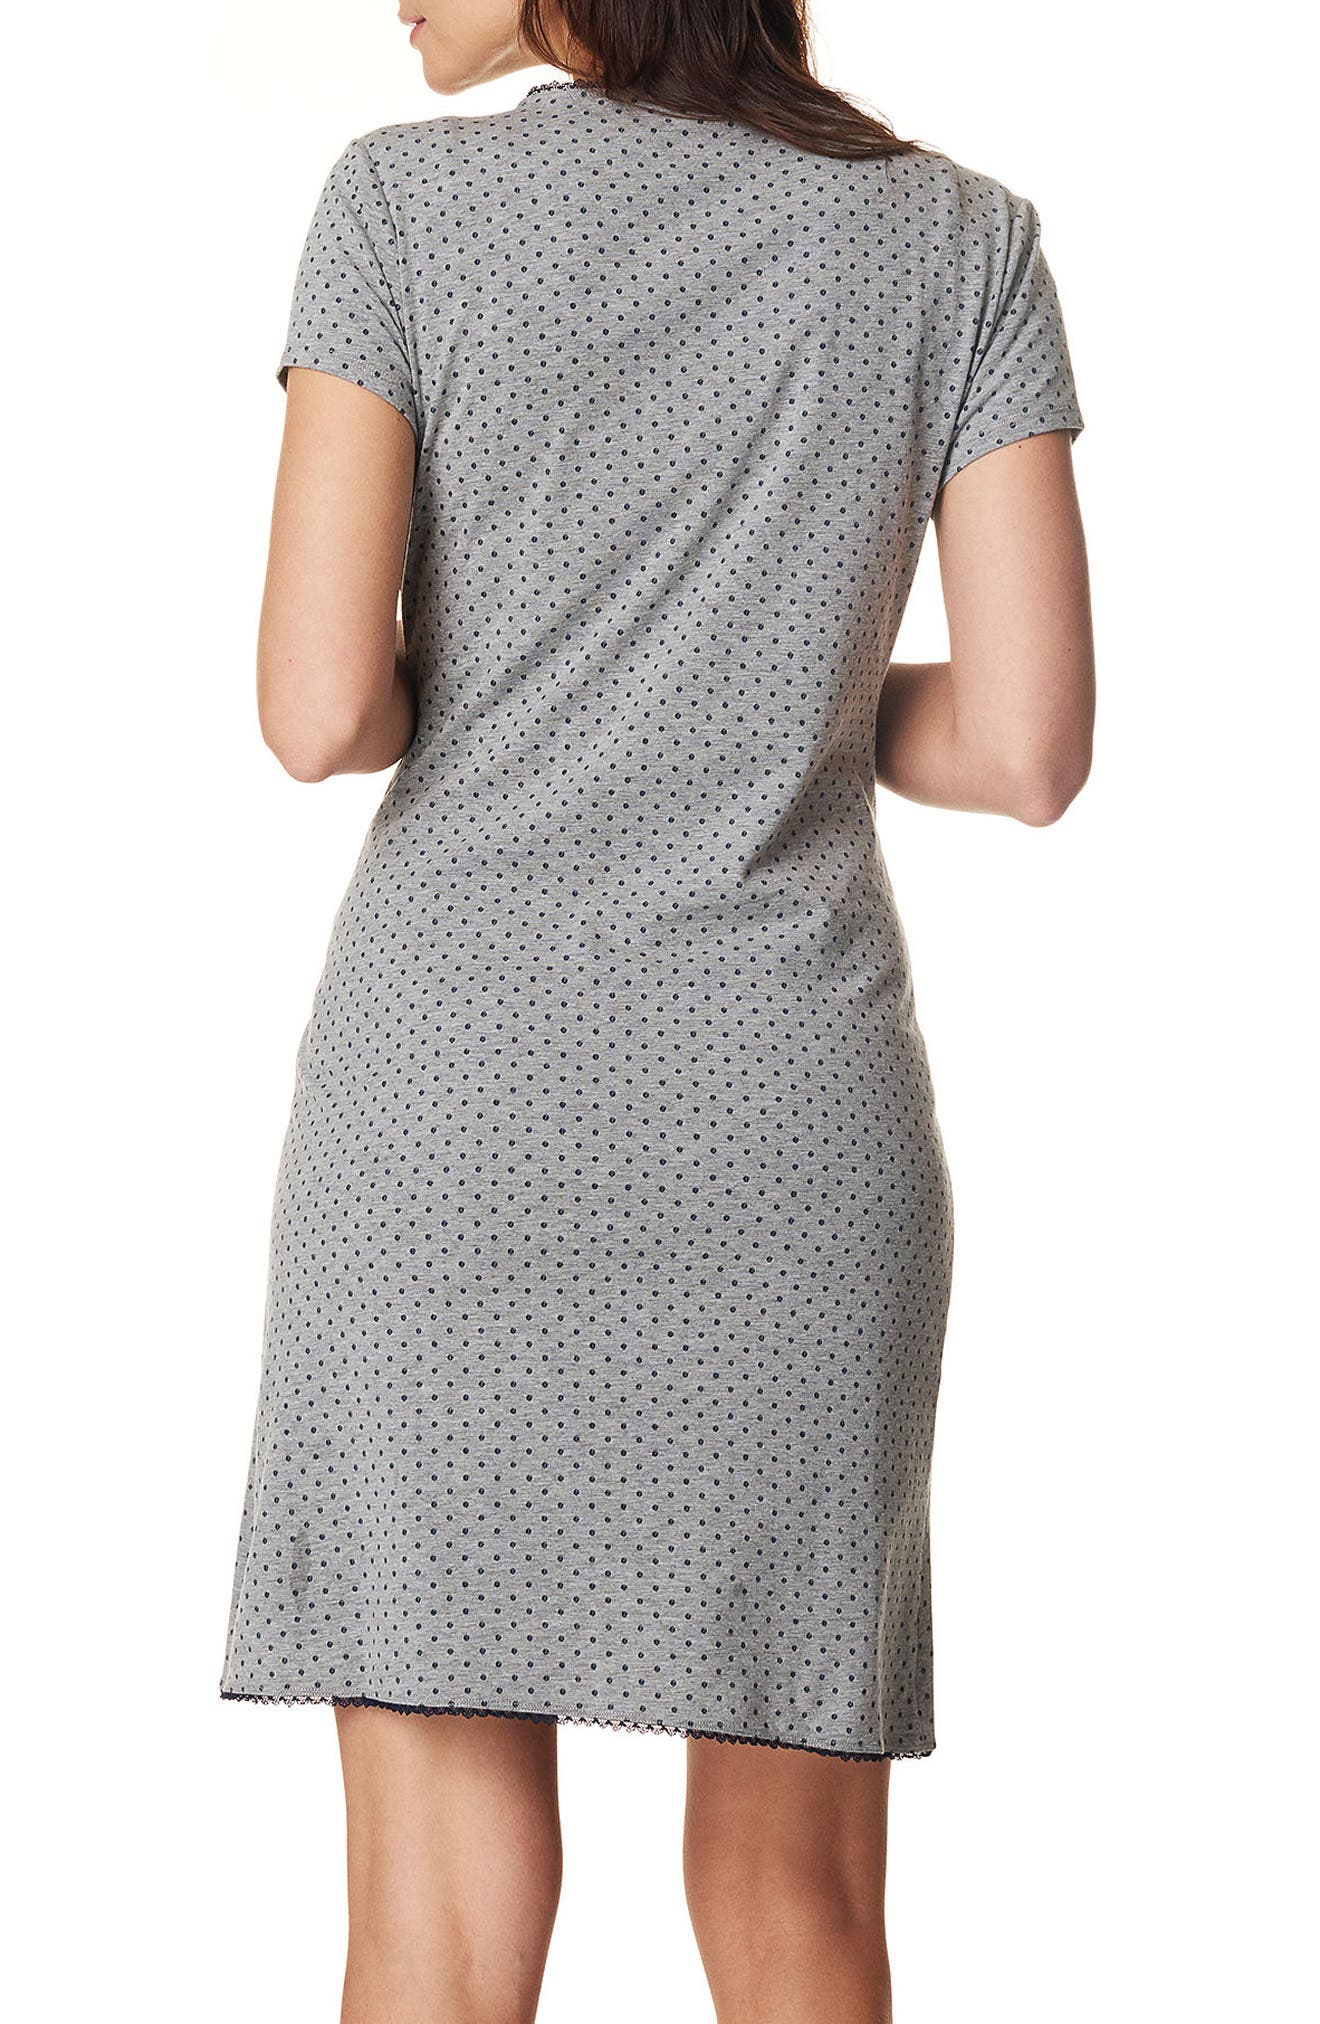 Marni Jersey Maternity/Nursing Dress,                             Alternate thumbnail 2, color,                             GREY